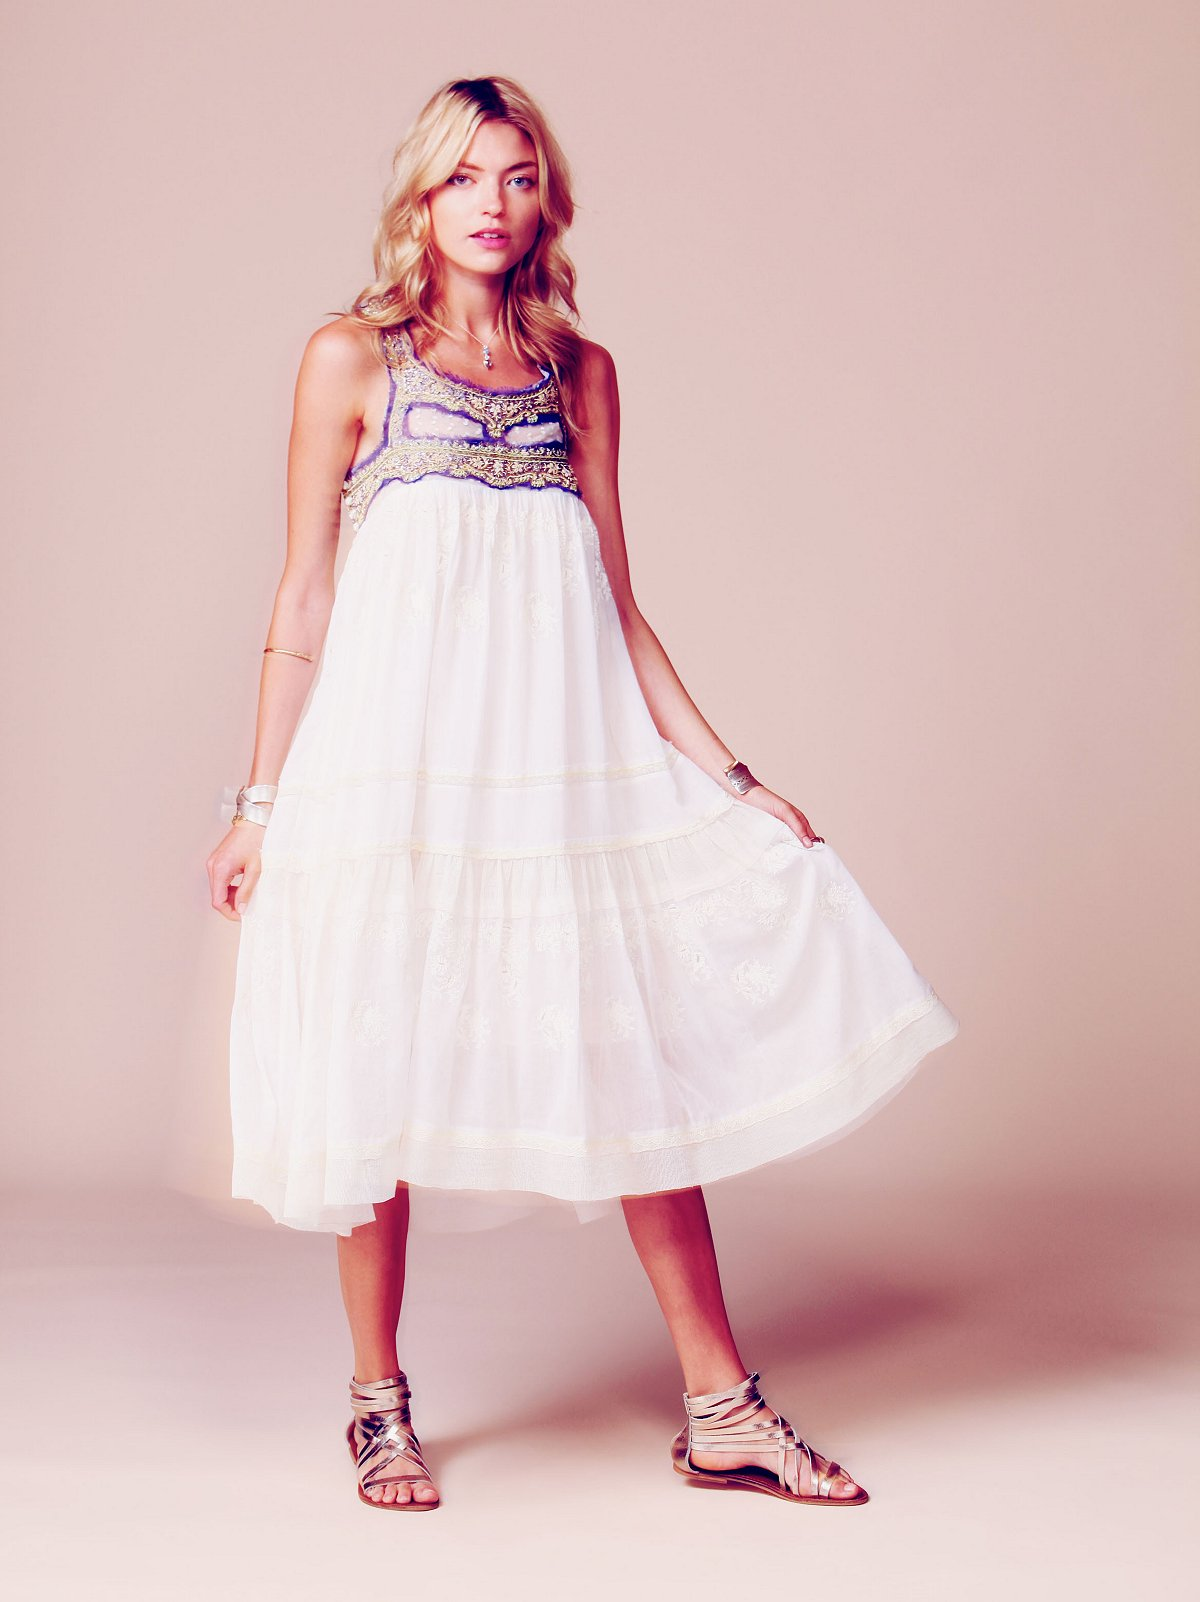 Kristal's Limited Edition White Summer Dress